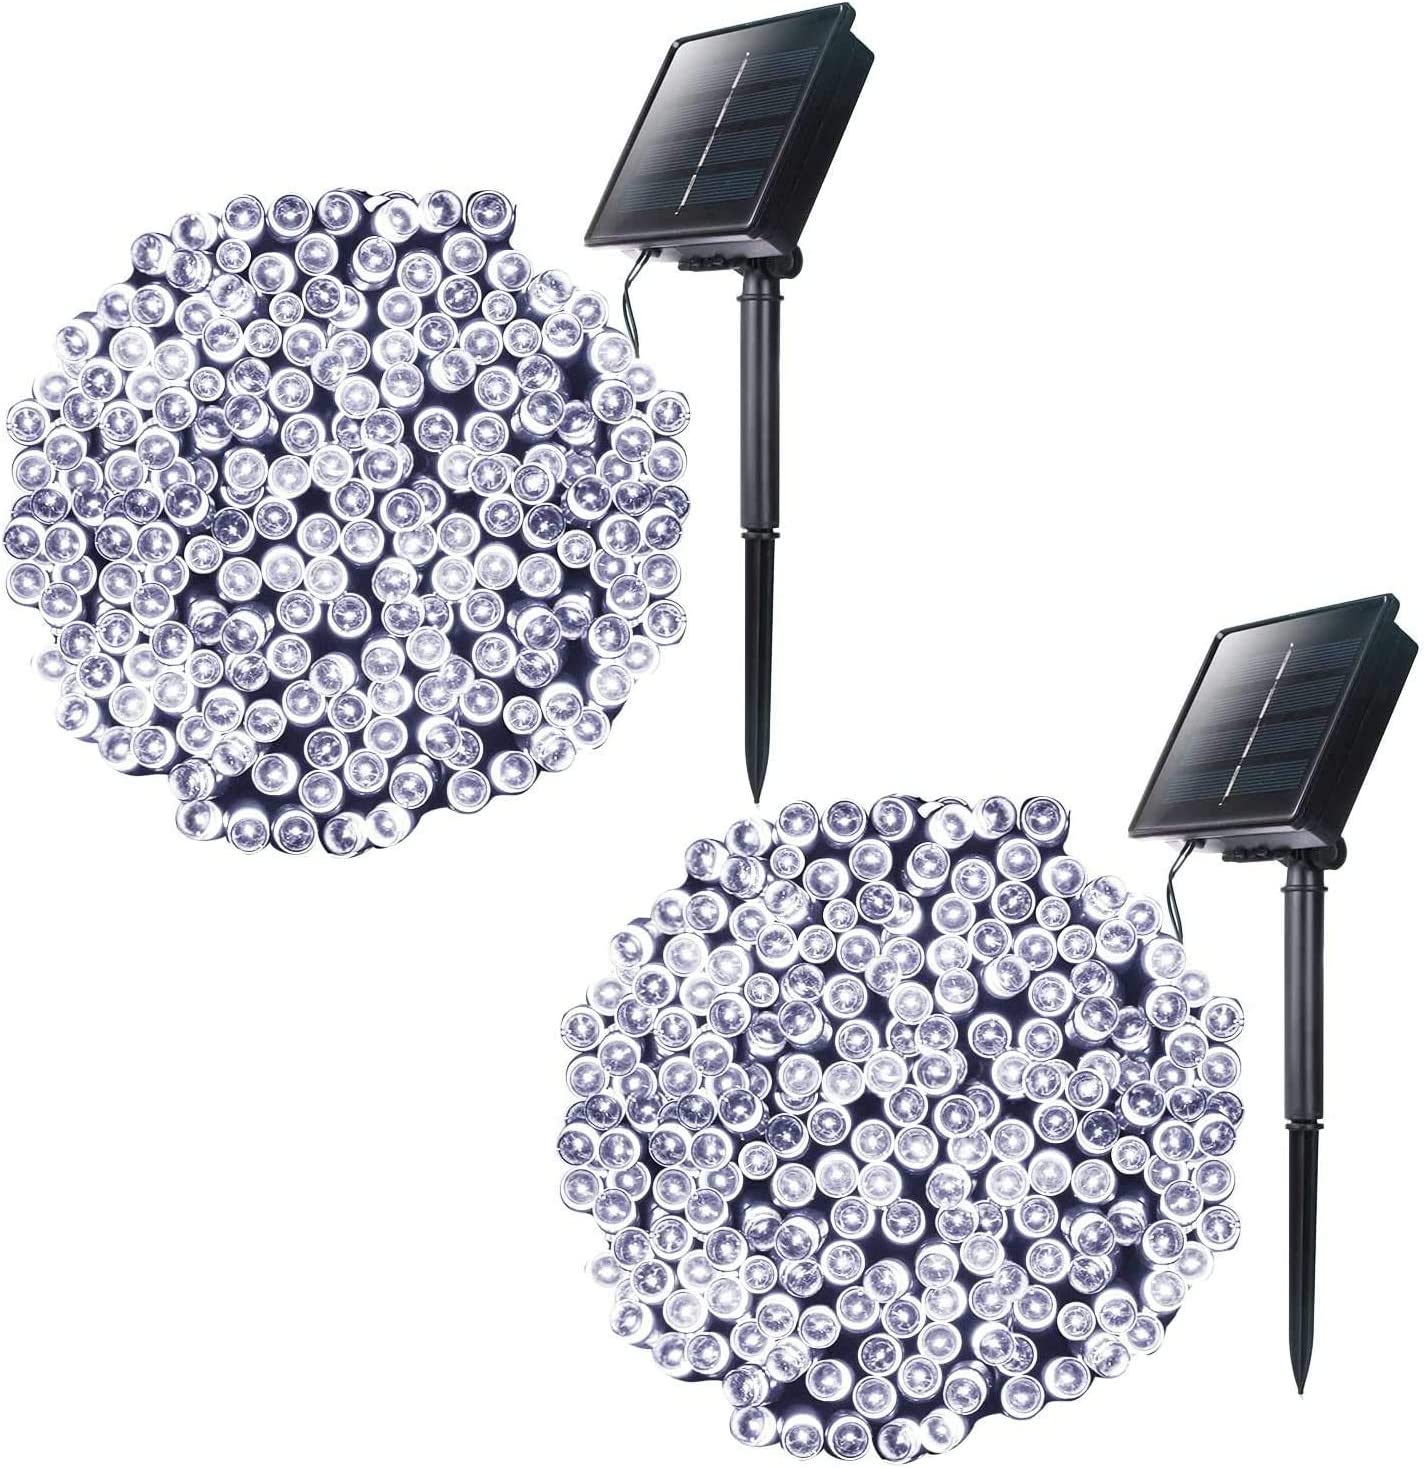 LED Outdoor Solar Christmas Lights - 72 Feet 200LED 8 Modes Waterproof Solar Powered Lights for Xmas Indoor Bedroom Outside Patio Gazebo Yard Balcony Wedding Party Tree Decor, Pure White, 2 Pack